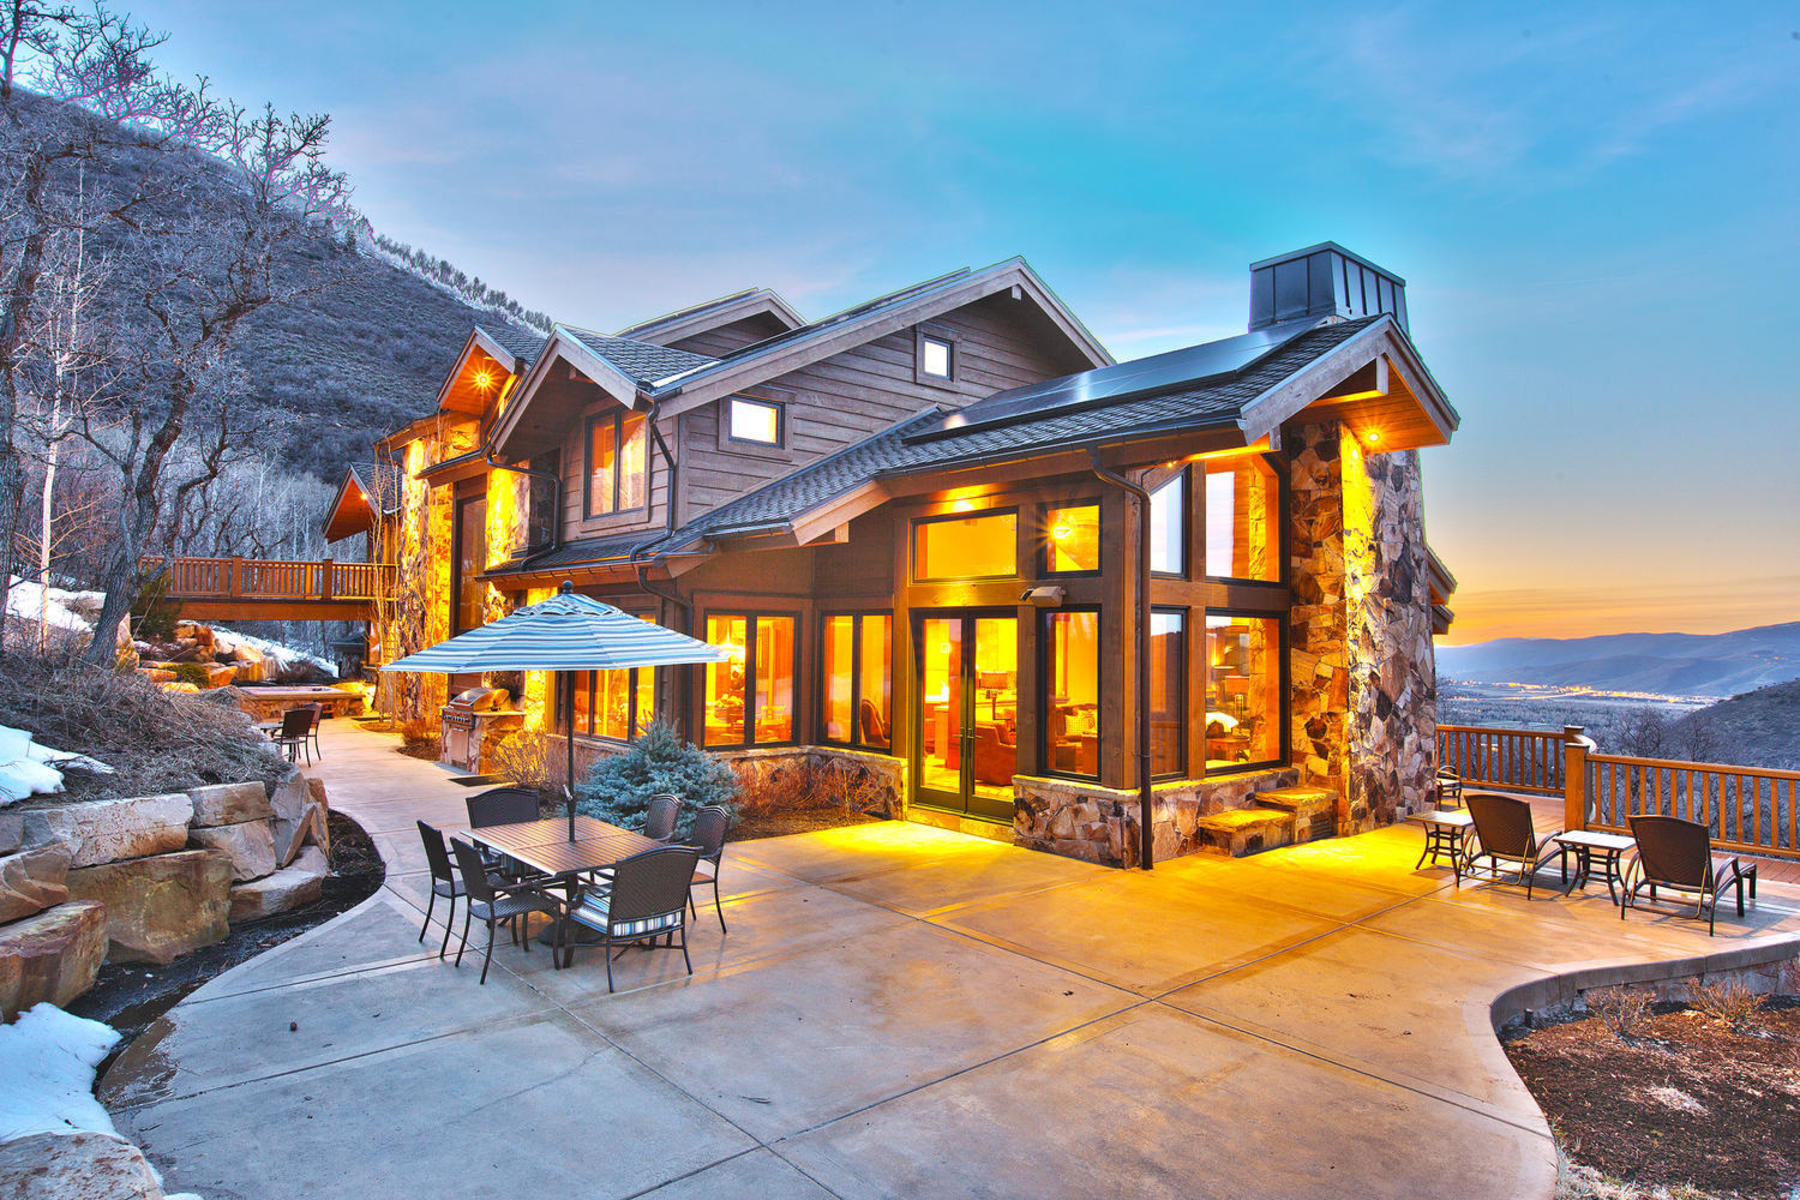 独户住宅 为 销售 在 Timeless Elegance at the Top of Aspen Springs 25 Canyon Ct 帕克城, 犹他州, 84060 美国